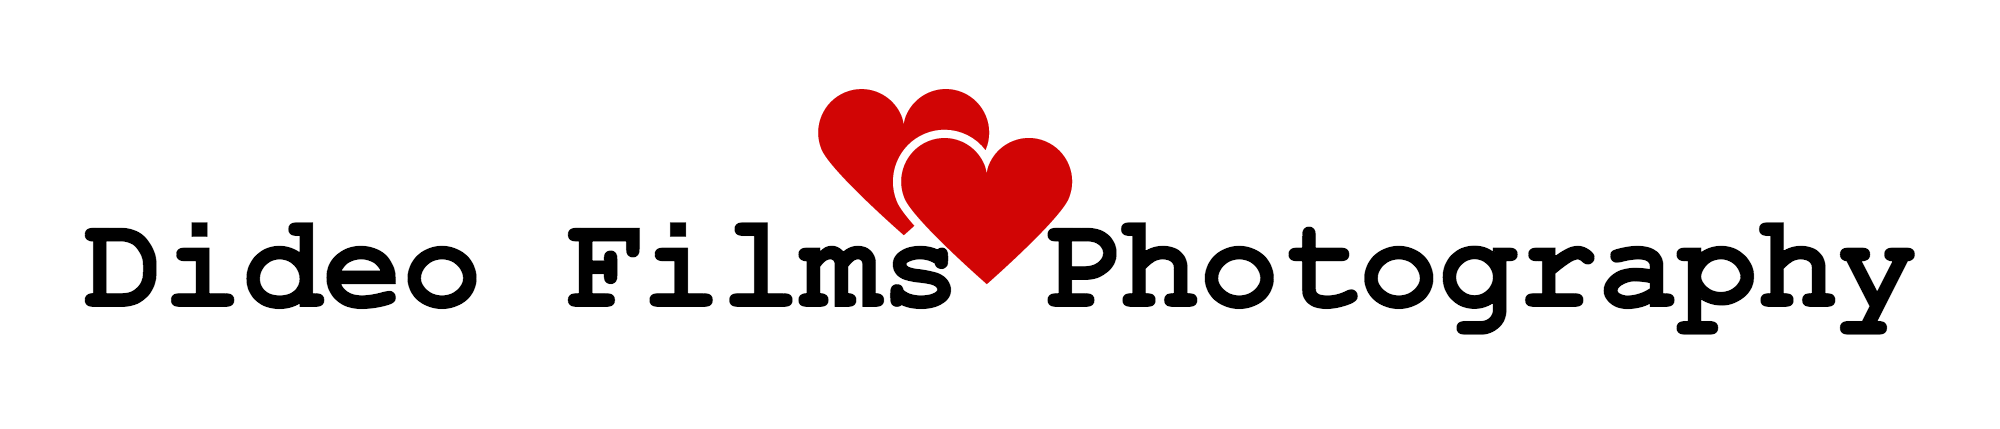 Heart DFP logo black on red.png